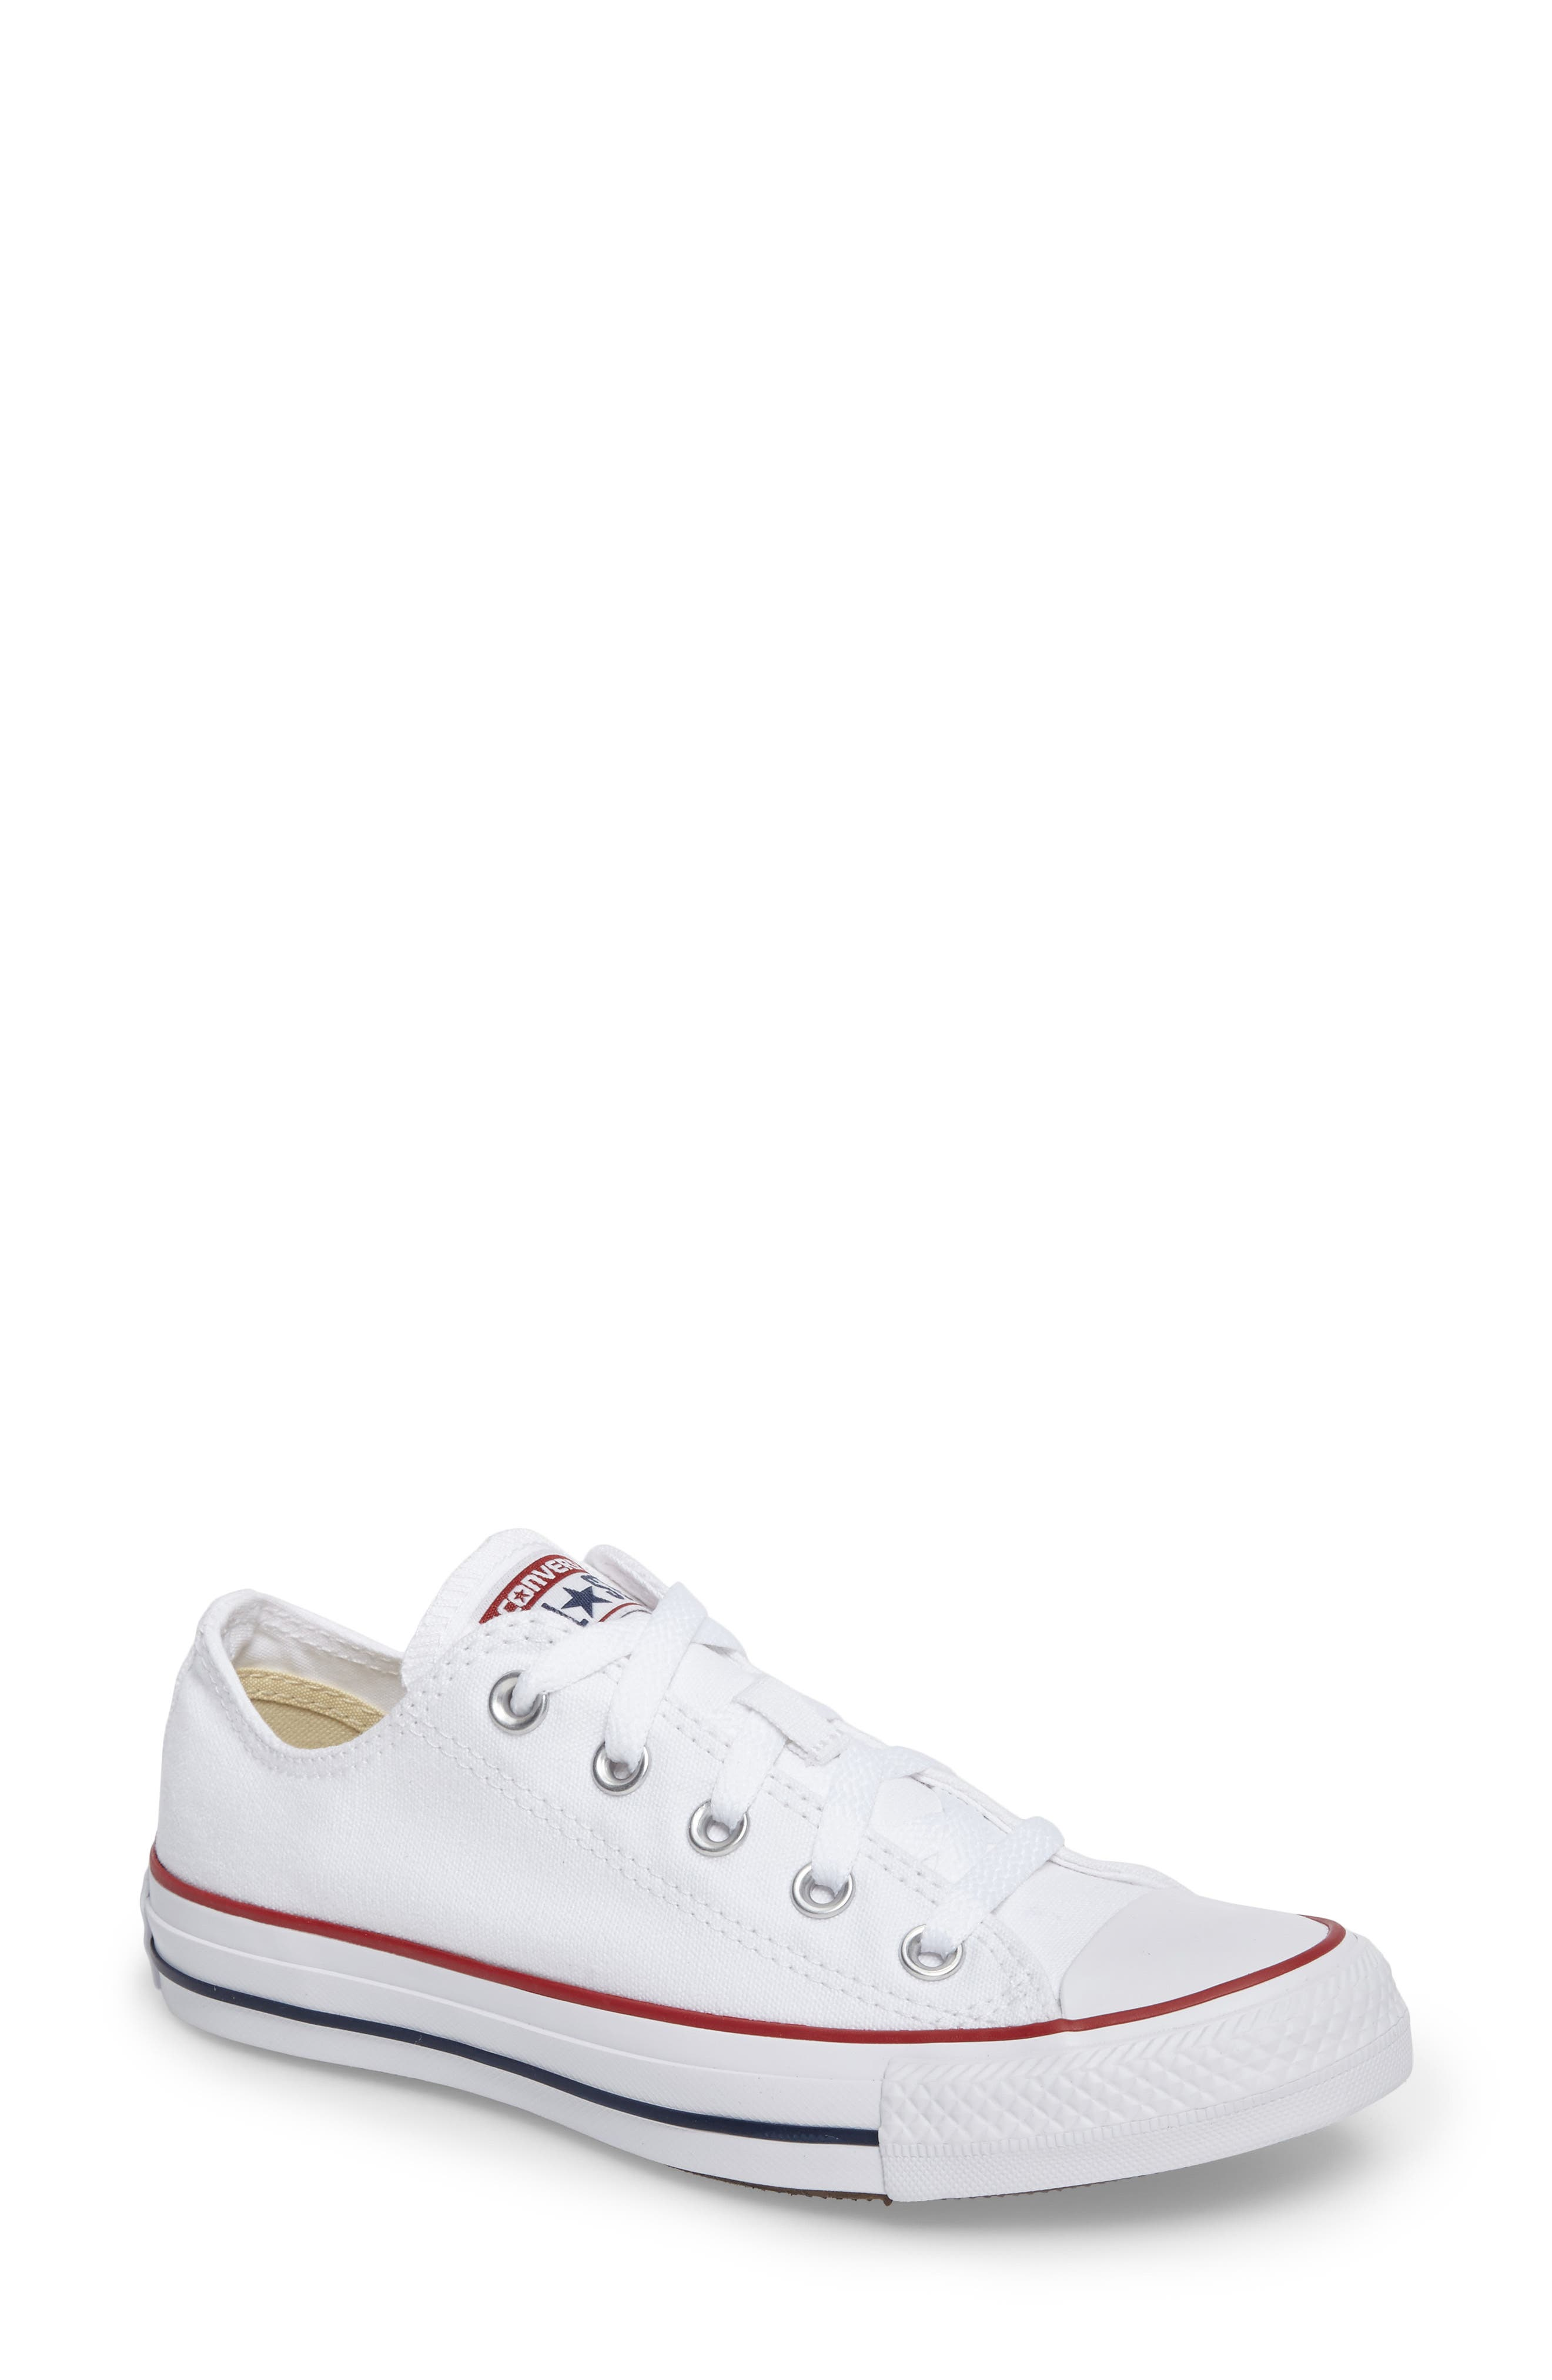 Chuck Taylor<sup>®</sup> Low Top Sneaker,                             Main thumbnail 1, color,                             Optic White